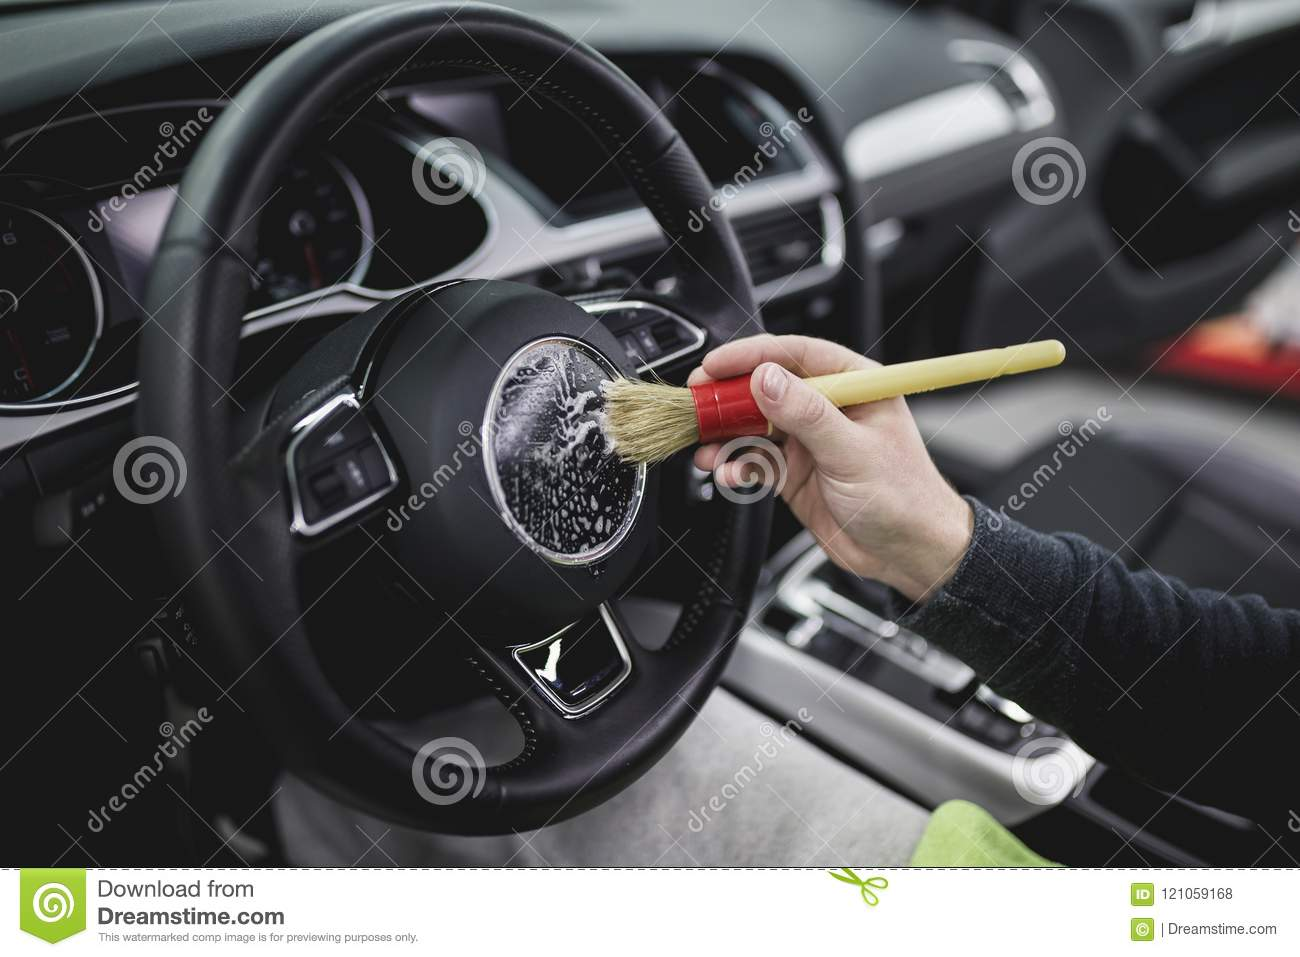 car cleaning and polishing stock photo. image of male - 121059168